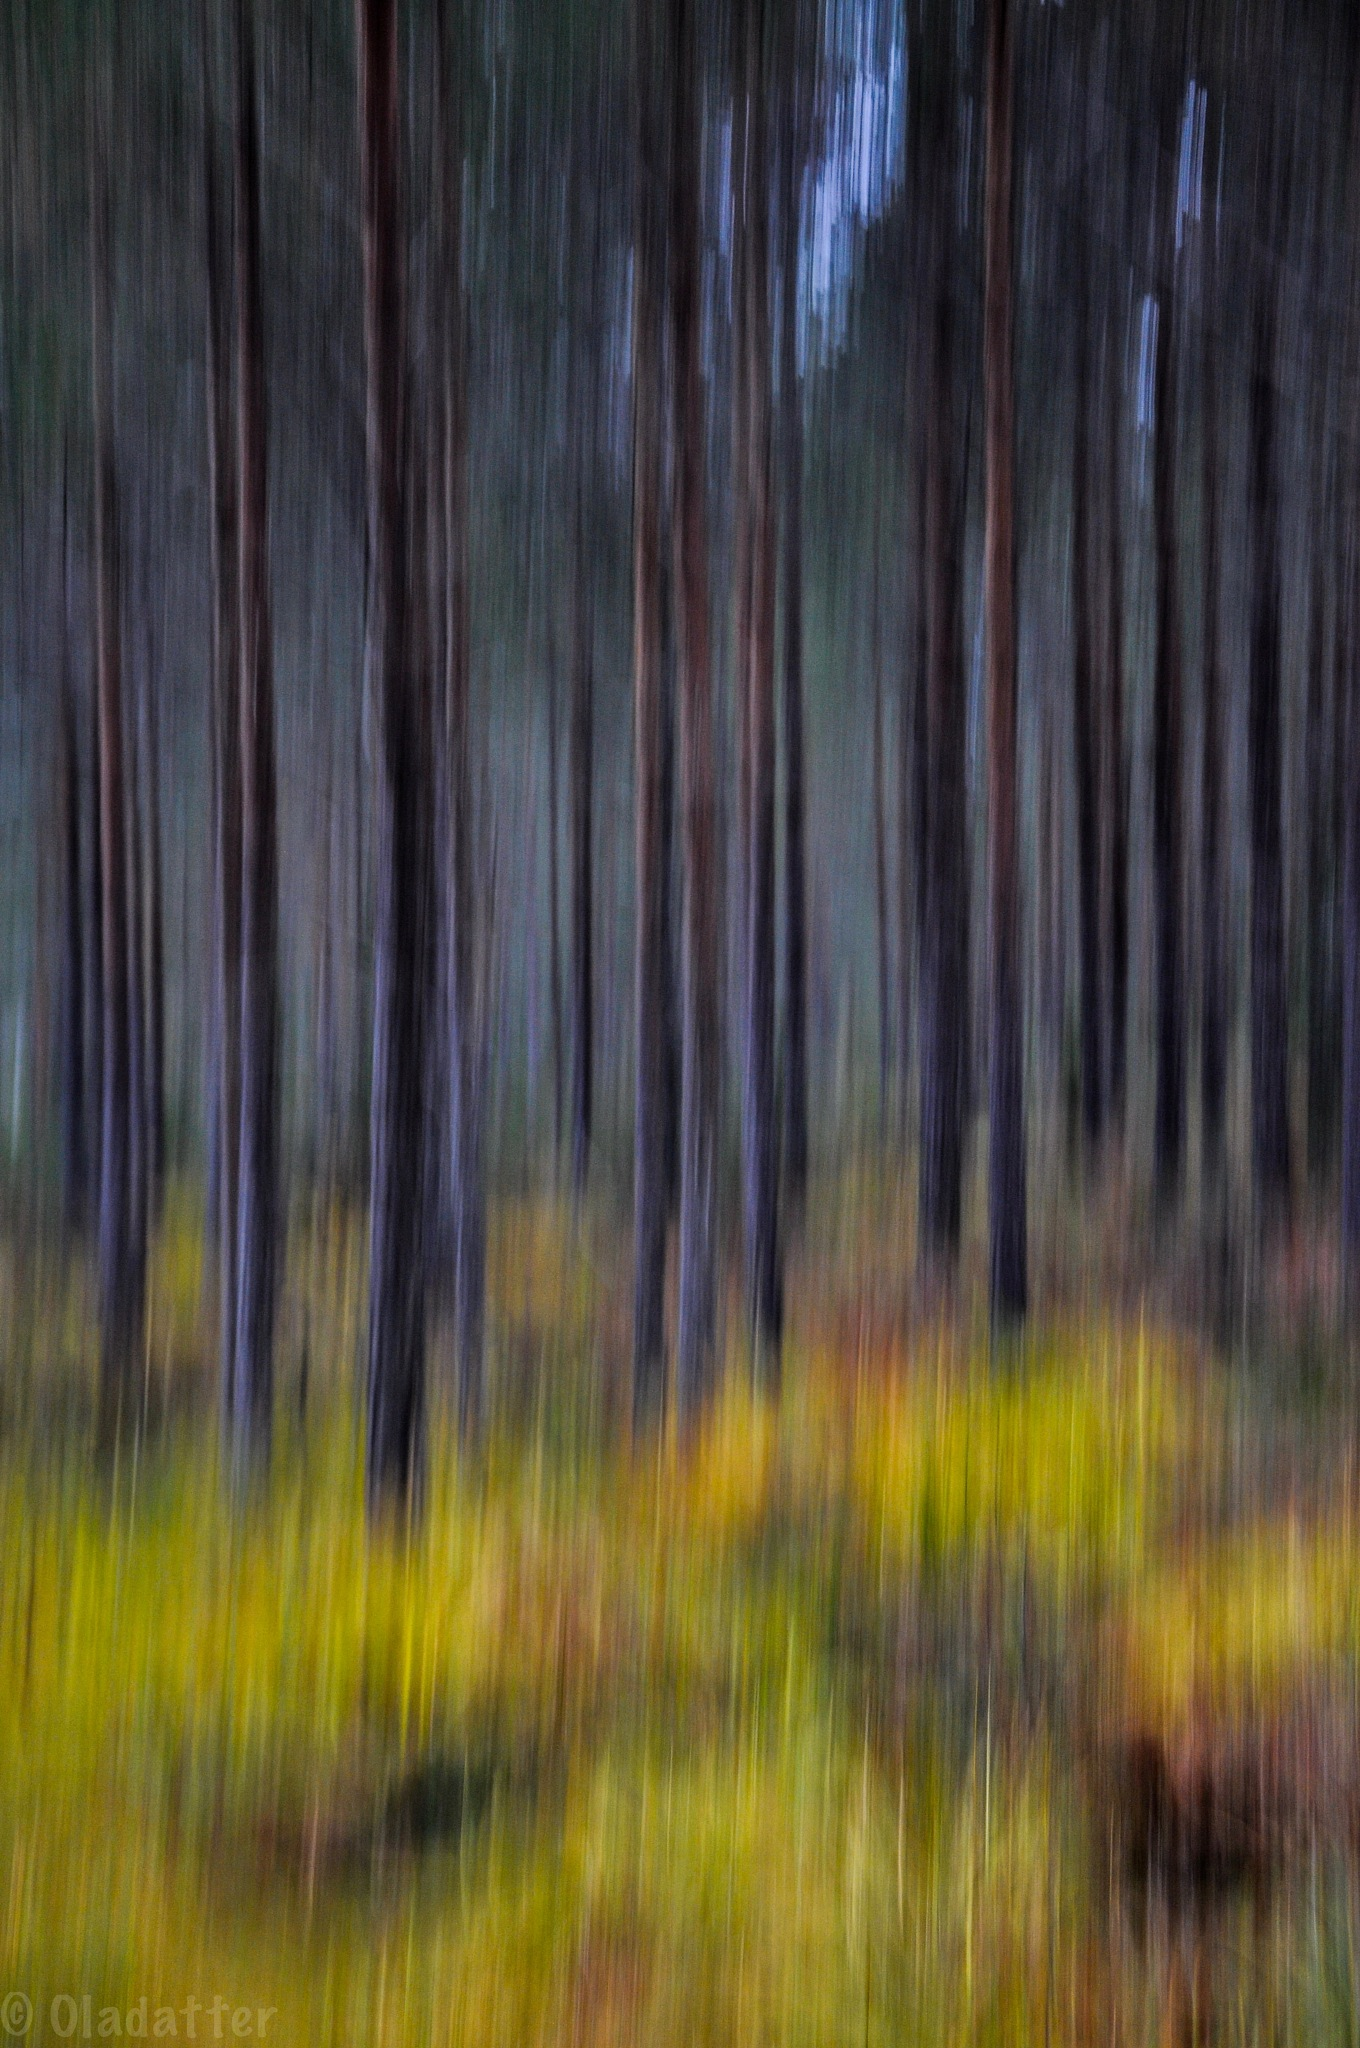 Autumn forest by Kristin Oladatter